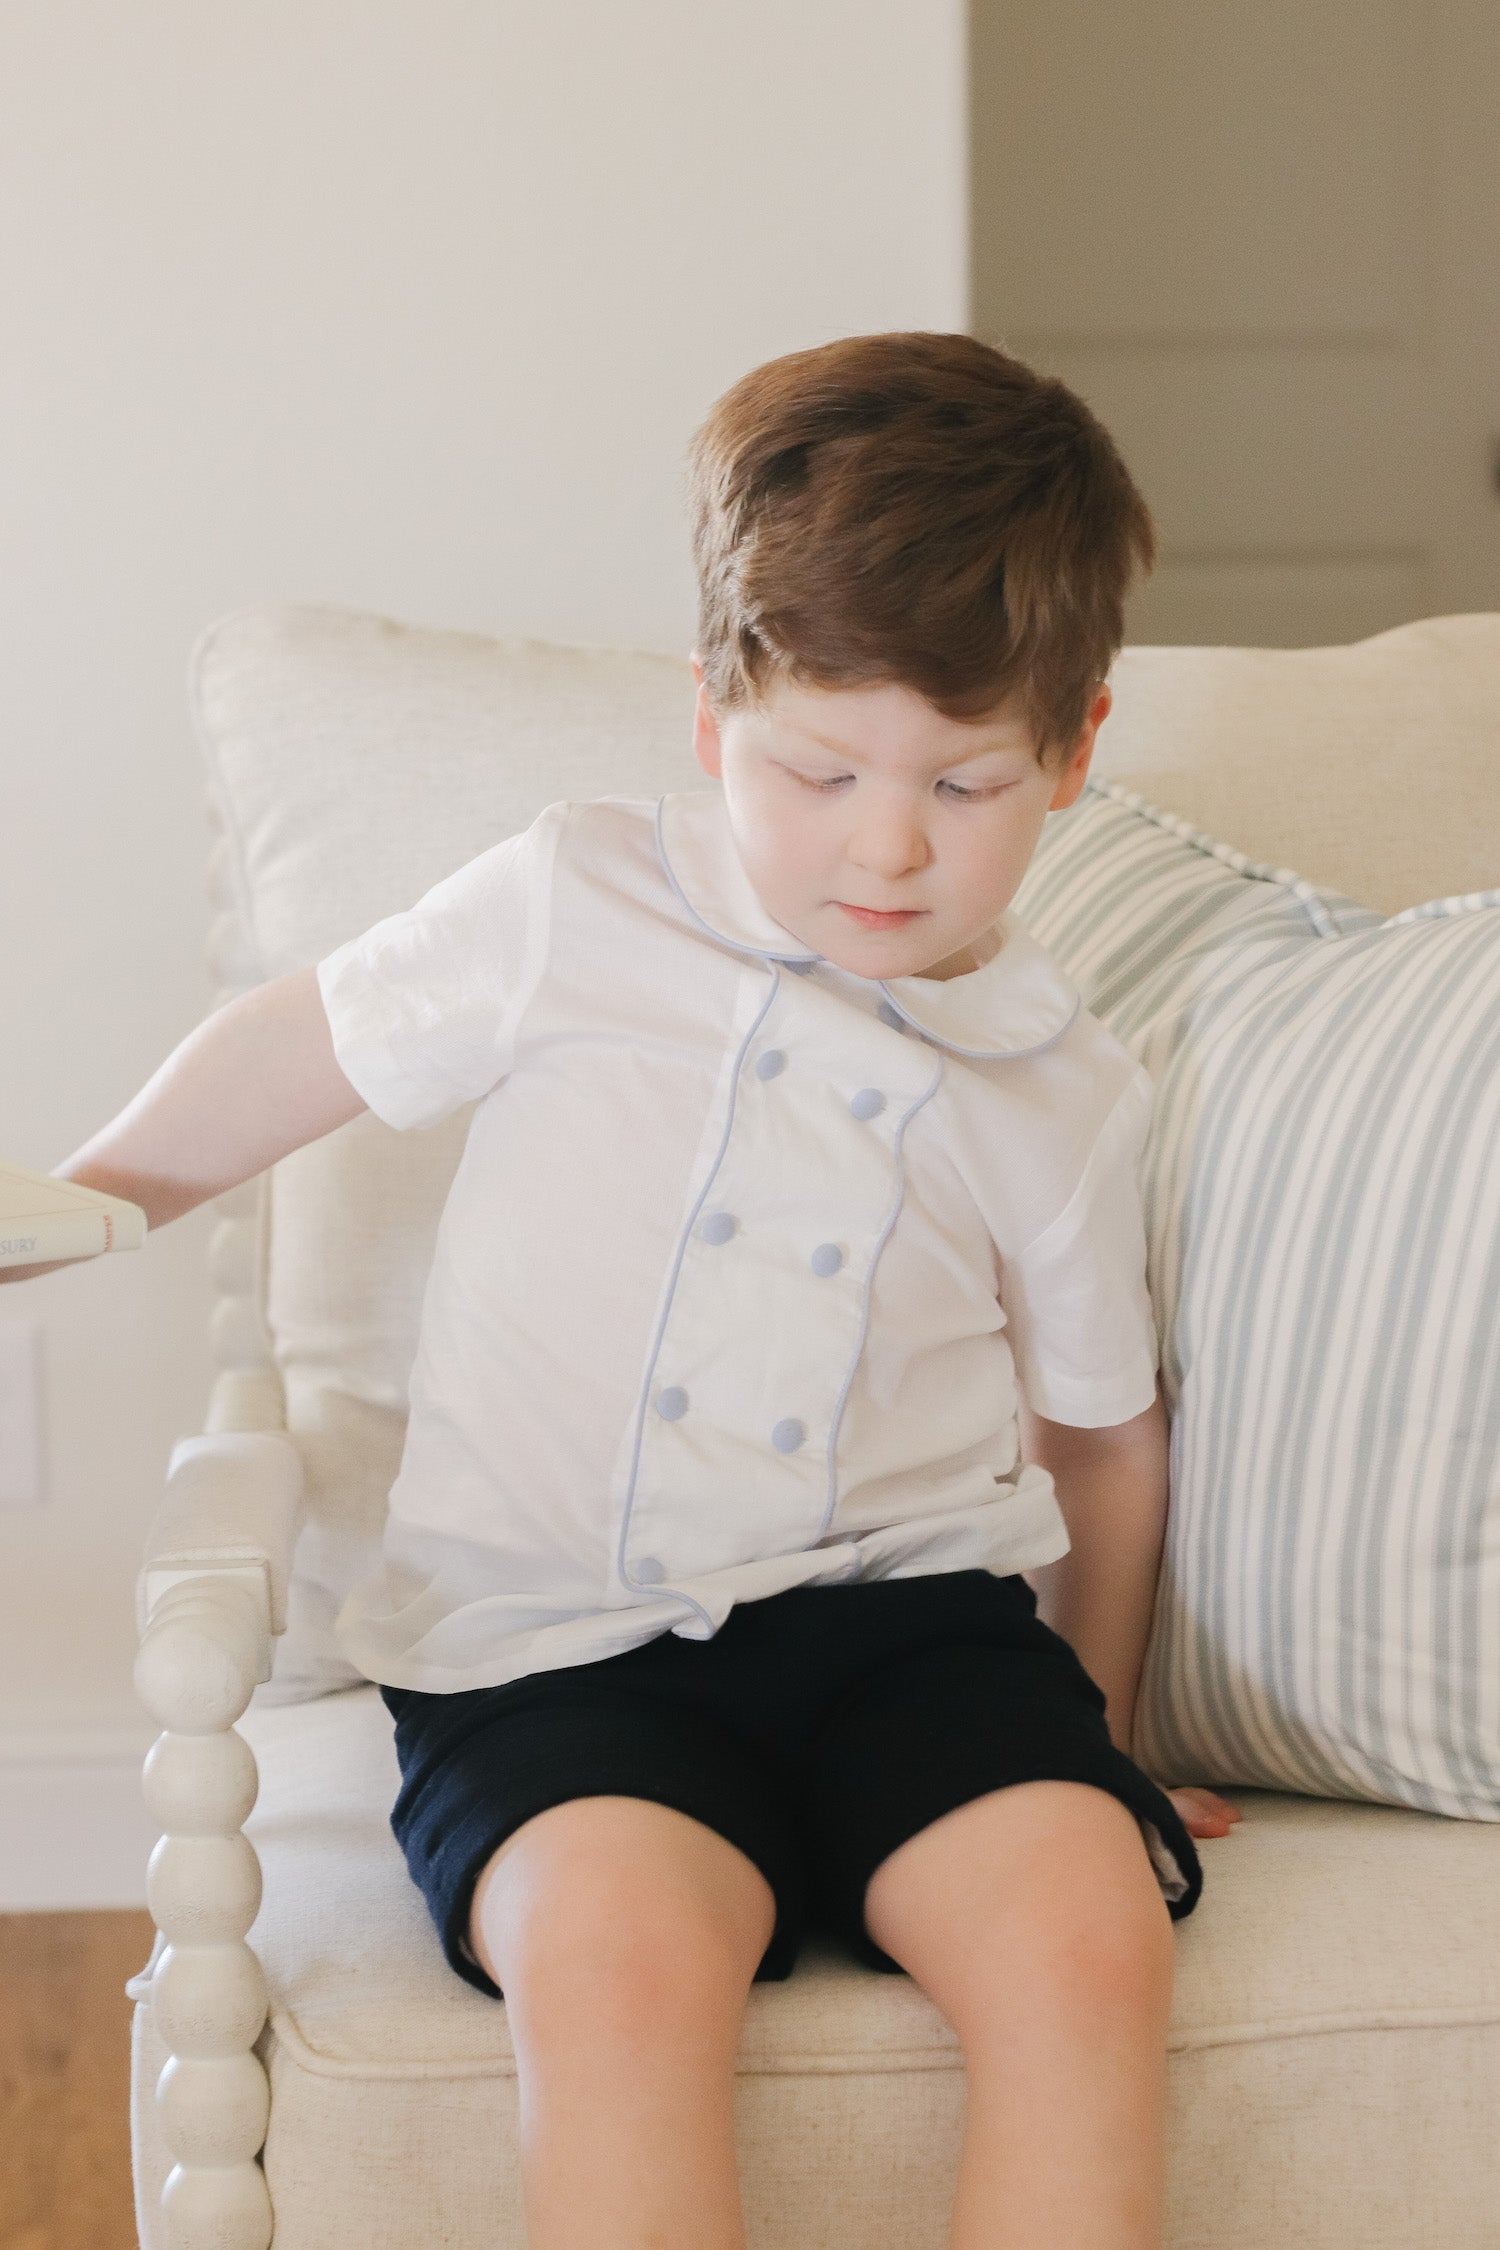 Double breasted buttoning Peter Pan collar shirt for children's portraits